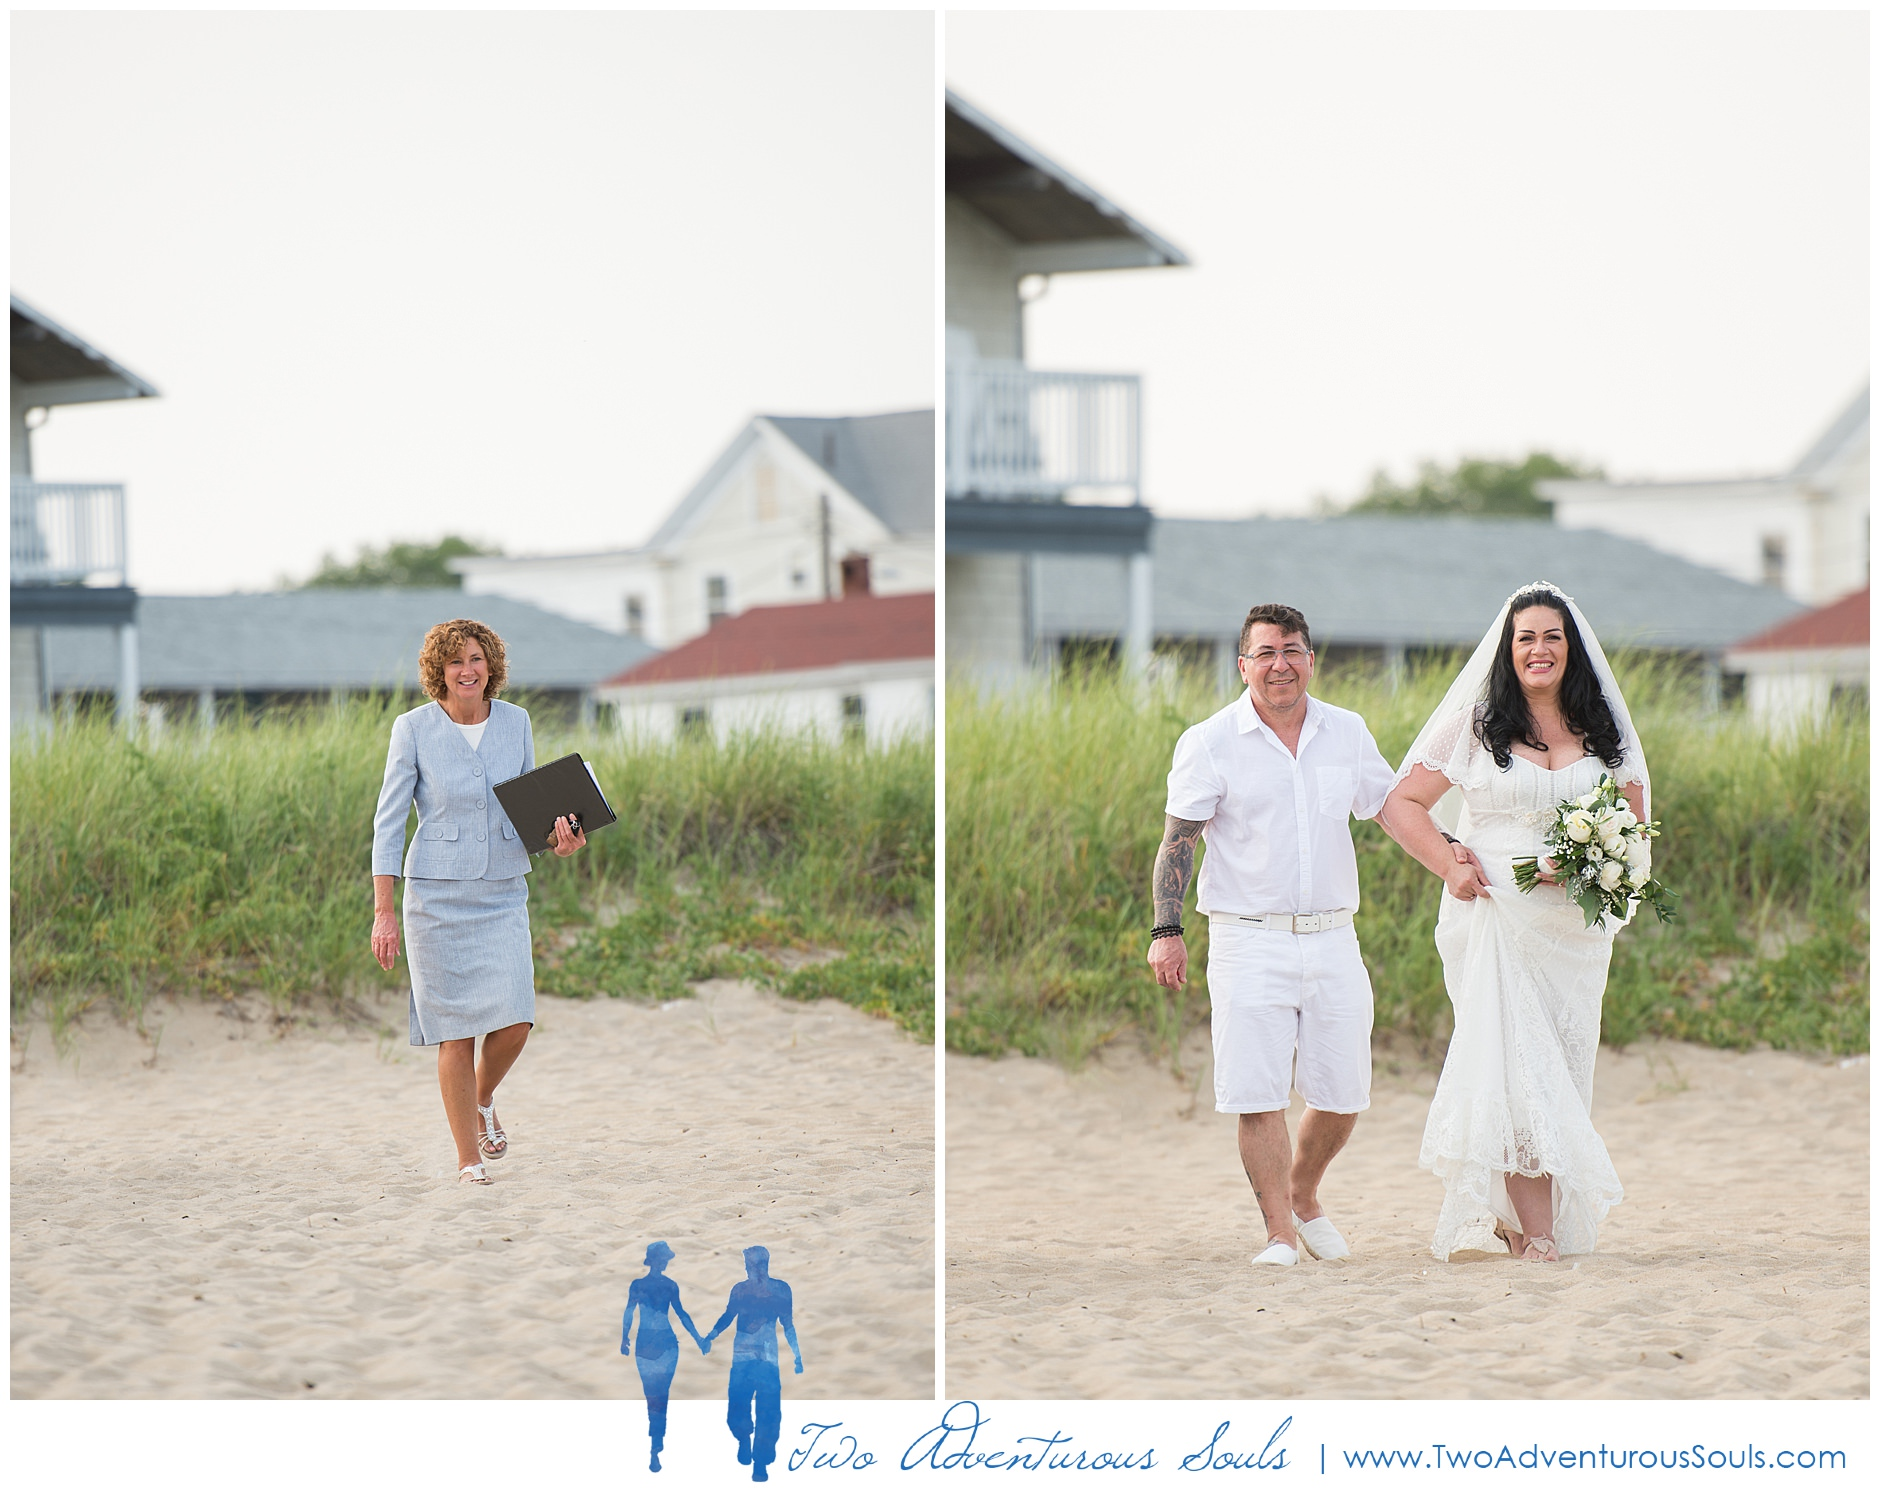 Old Orchard Wedding Photographers, Old Orchard Beach Photographers, Maine Elopement Photographers, Two Adventurous Souls-070919_0006.jpg